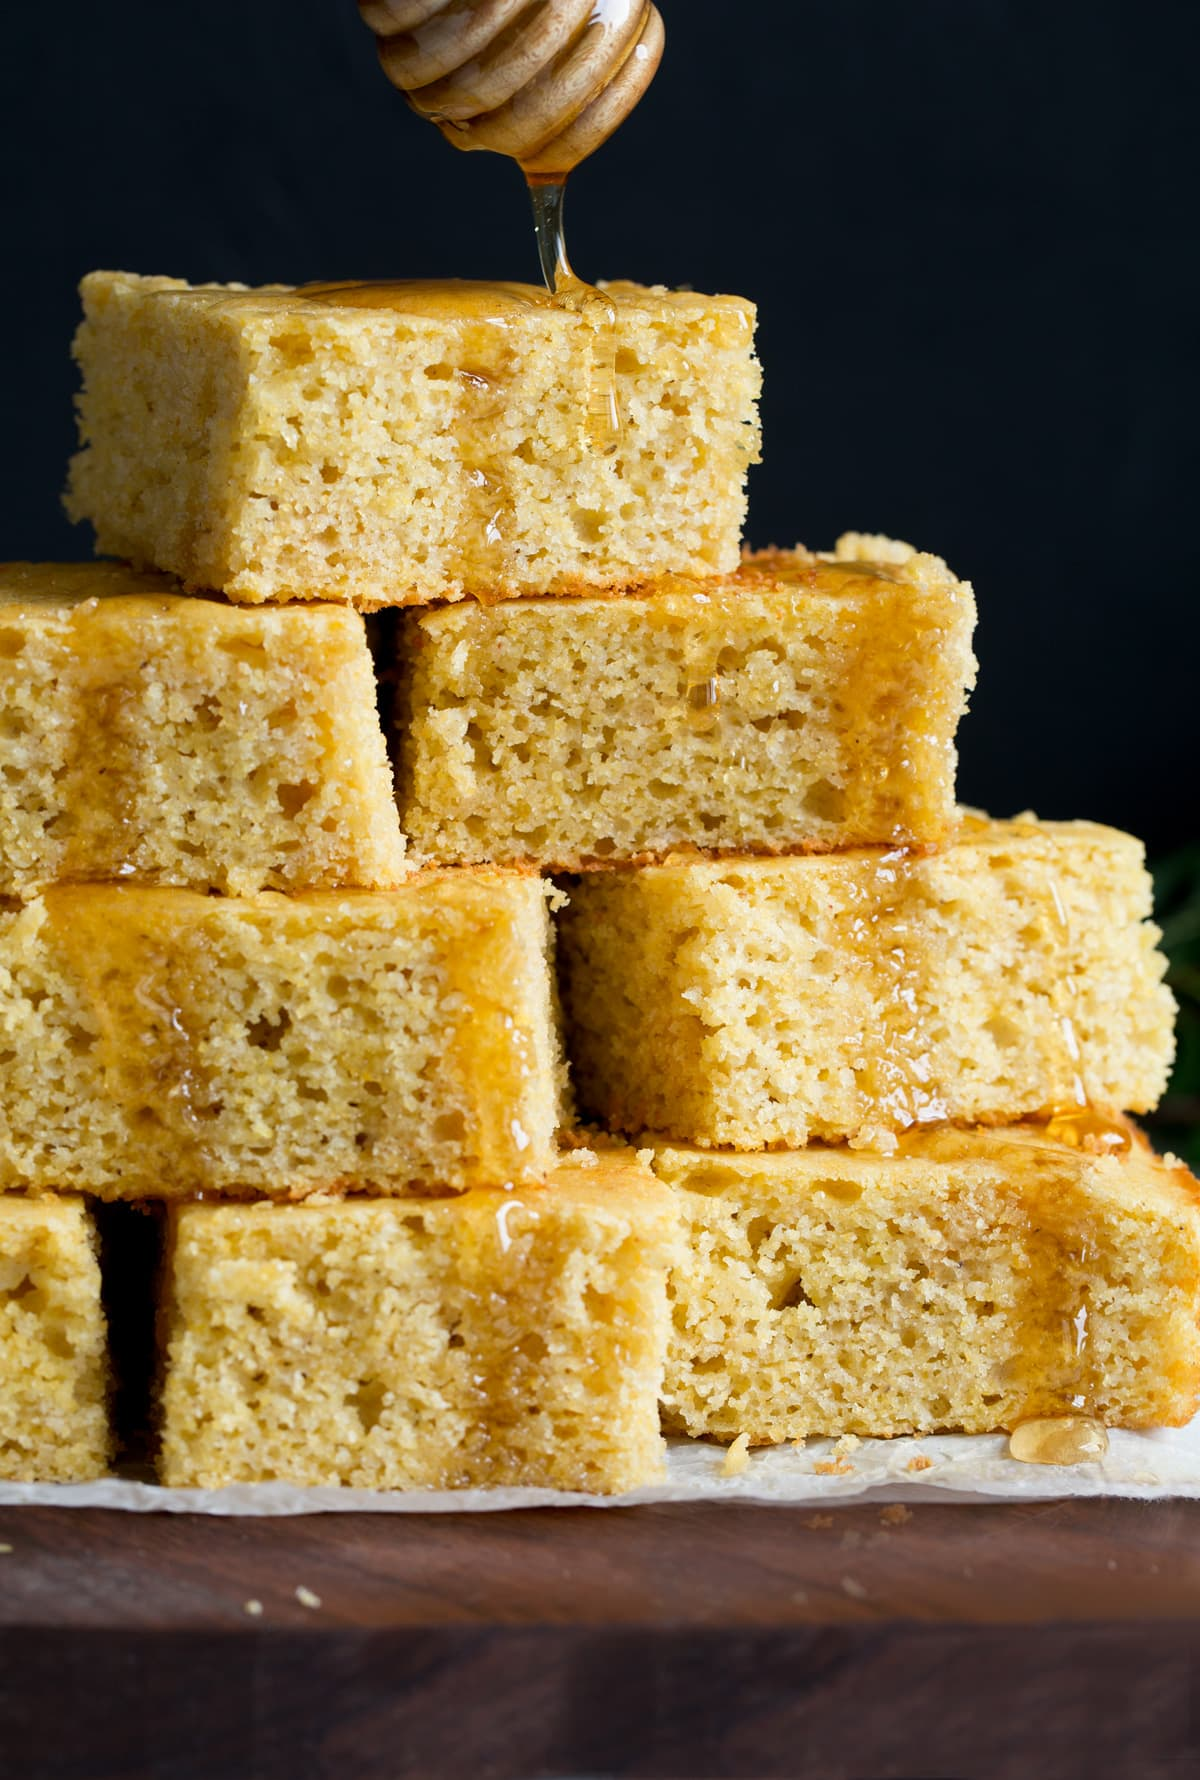 Drizzling honey on a pyramid of homemade cornbread